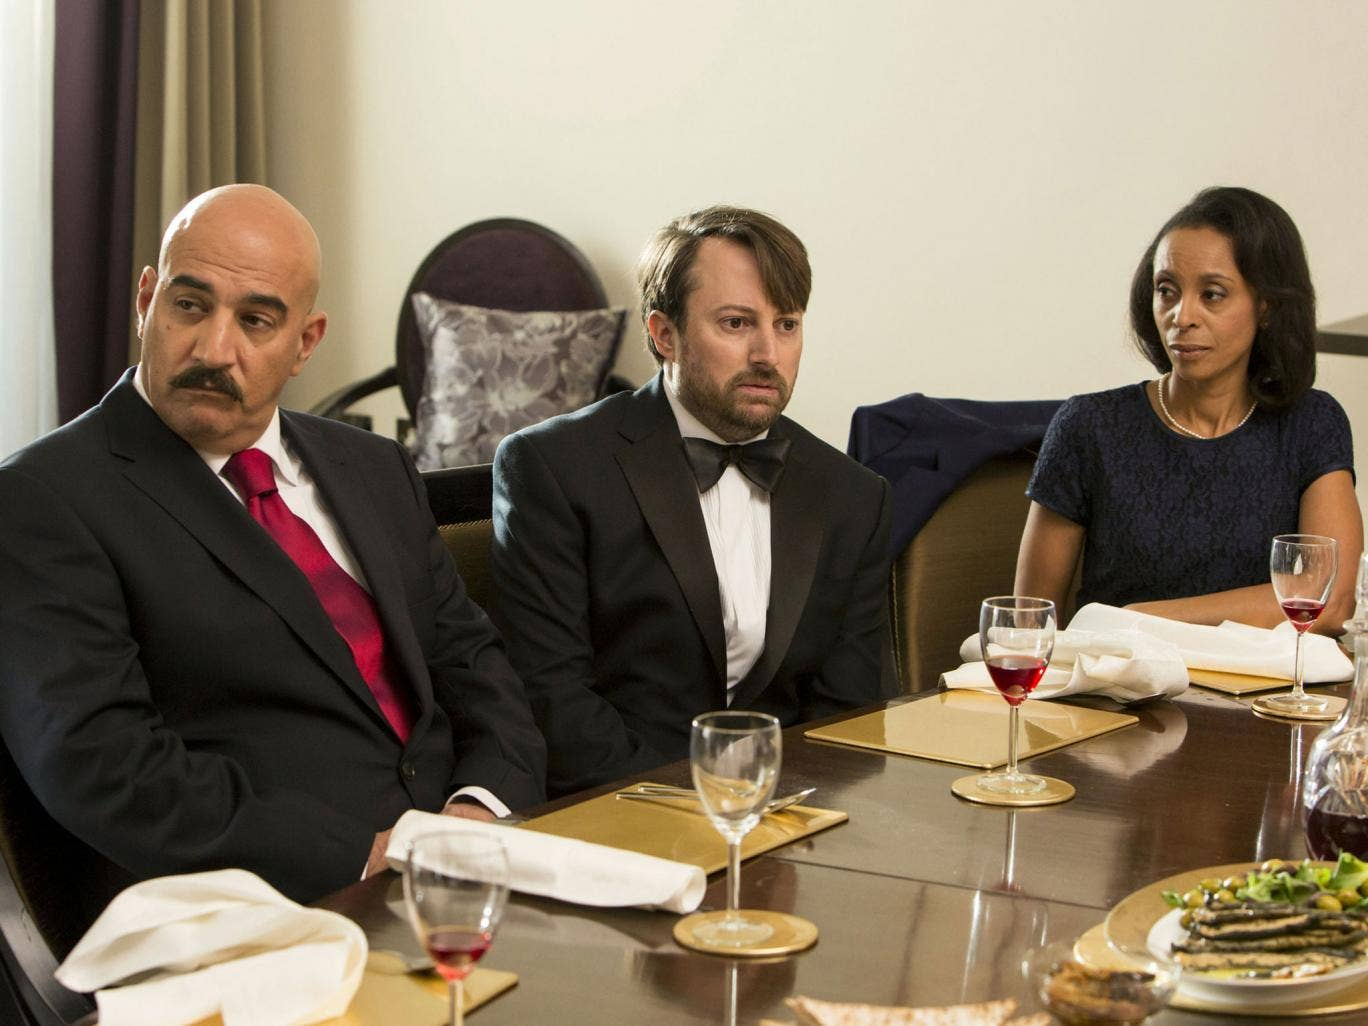 David Mitchell stars in Ambassadors, which continues on BBC2